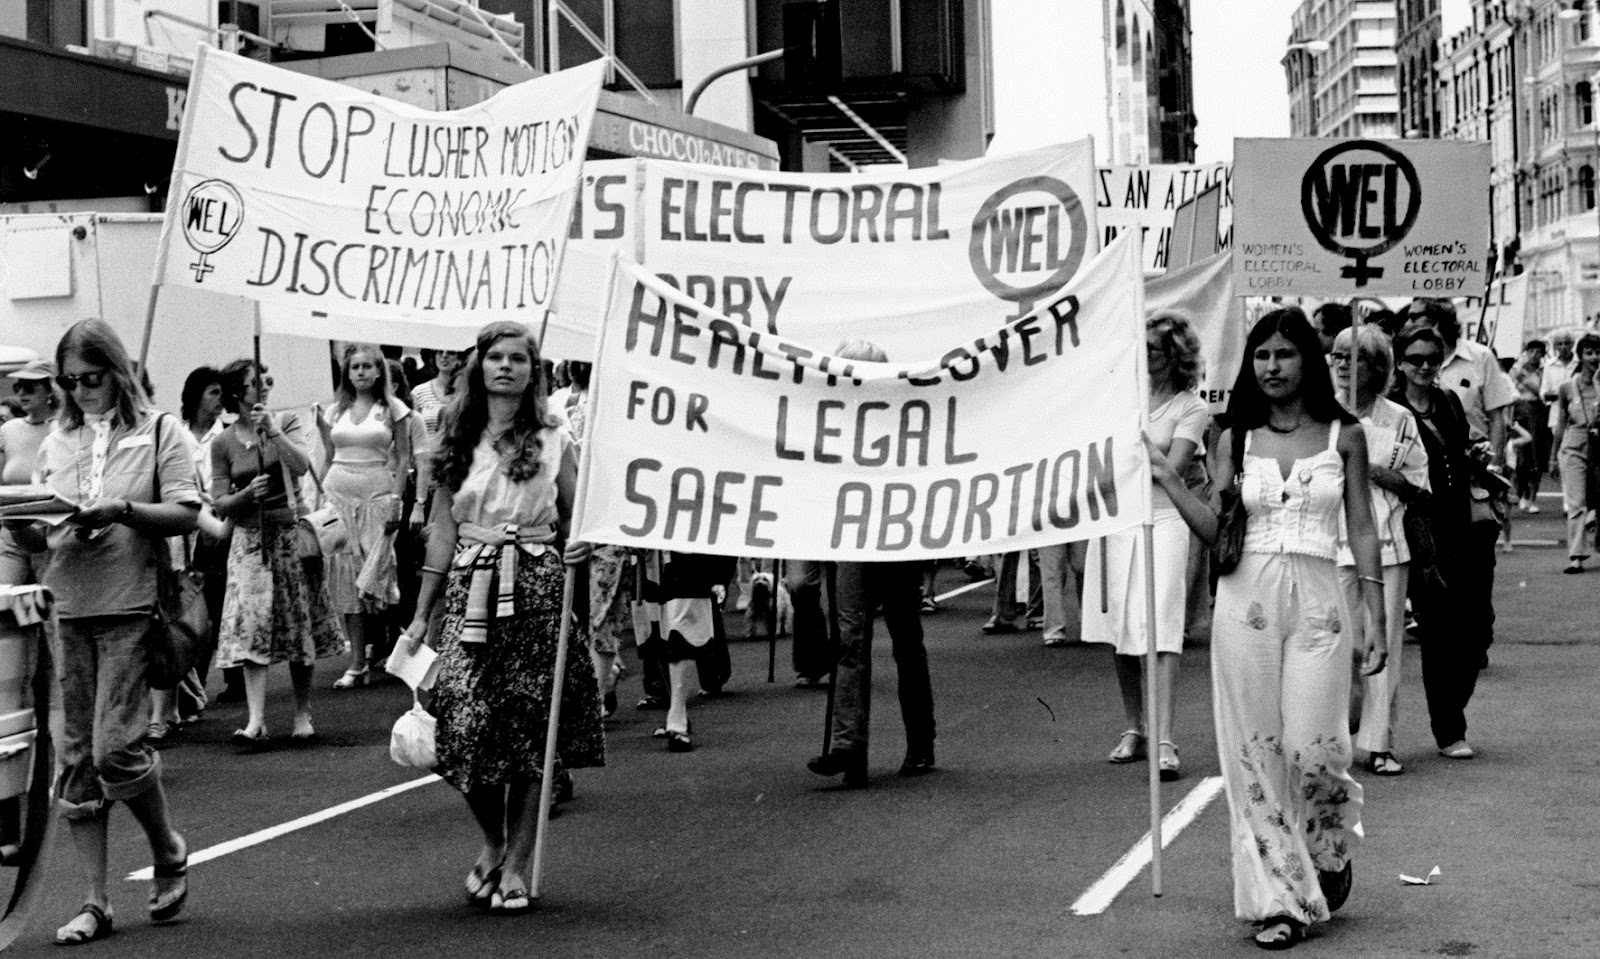 essay on womens liberation movement Women's liberation movement (1960's)imagine yourself as a woman in the 1960s they are denied basic rights, trapped in the home for life, and discriminated against in.